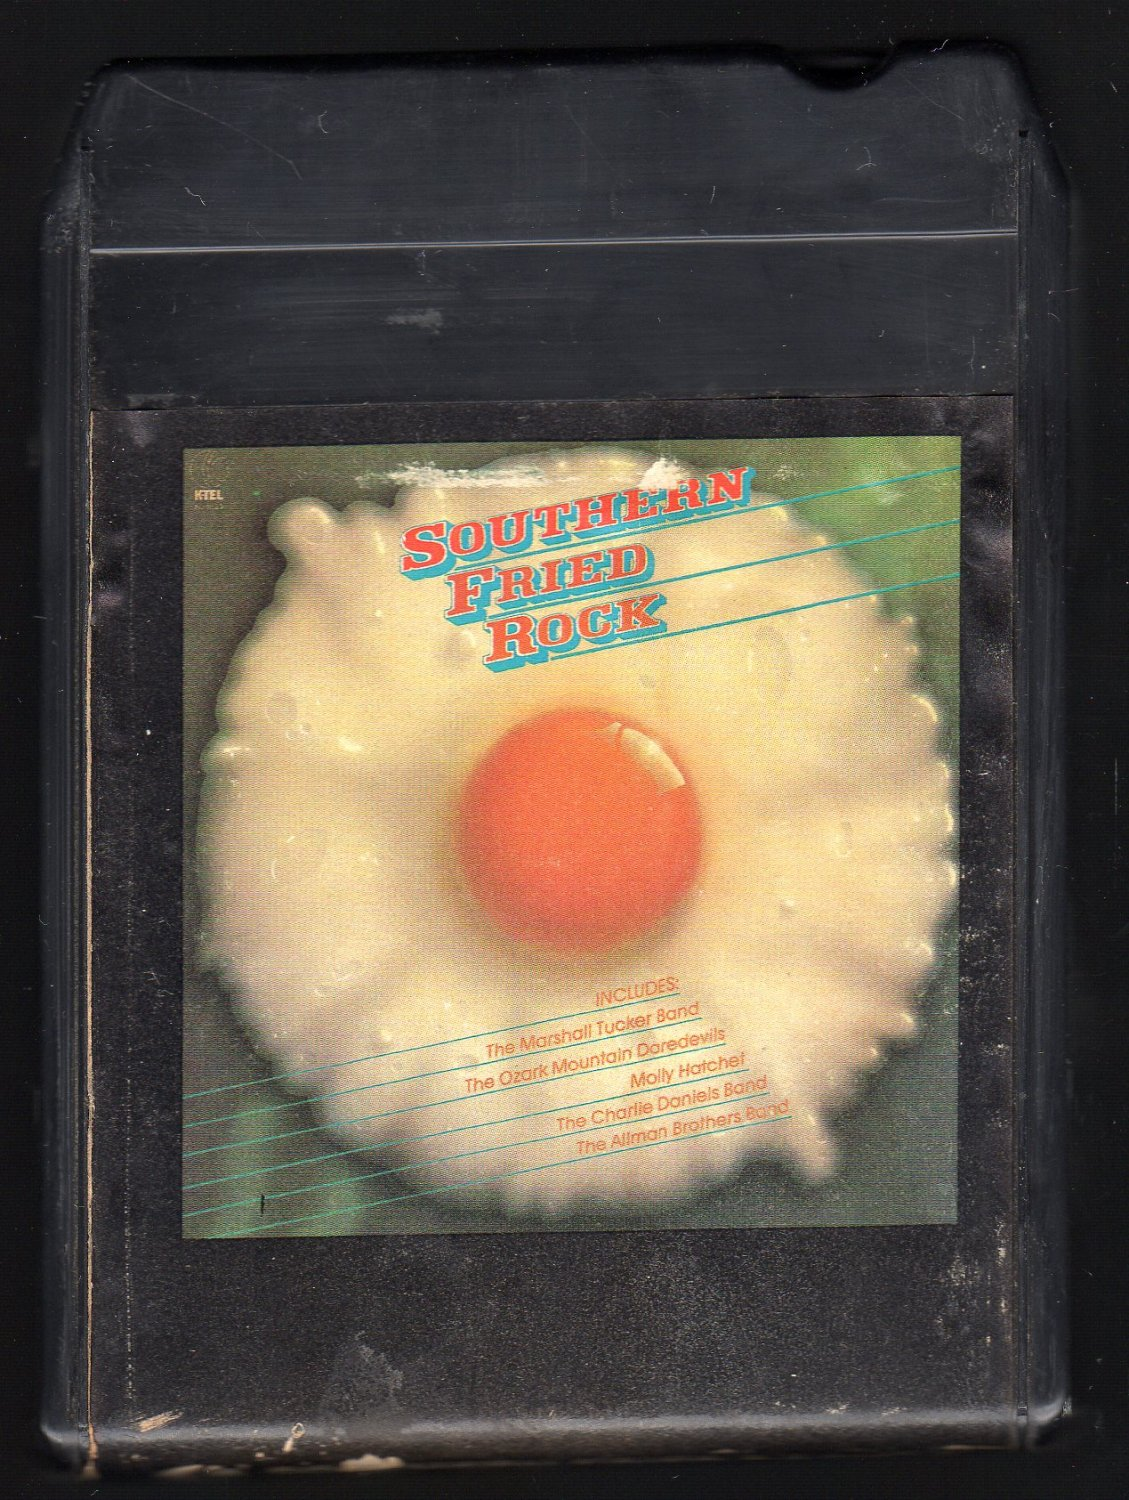 Southern Fried Rock - Various Southern Rock 1980 KTEL A28 8-TRACK TAPE